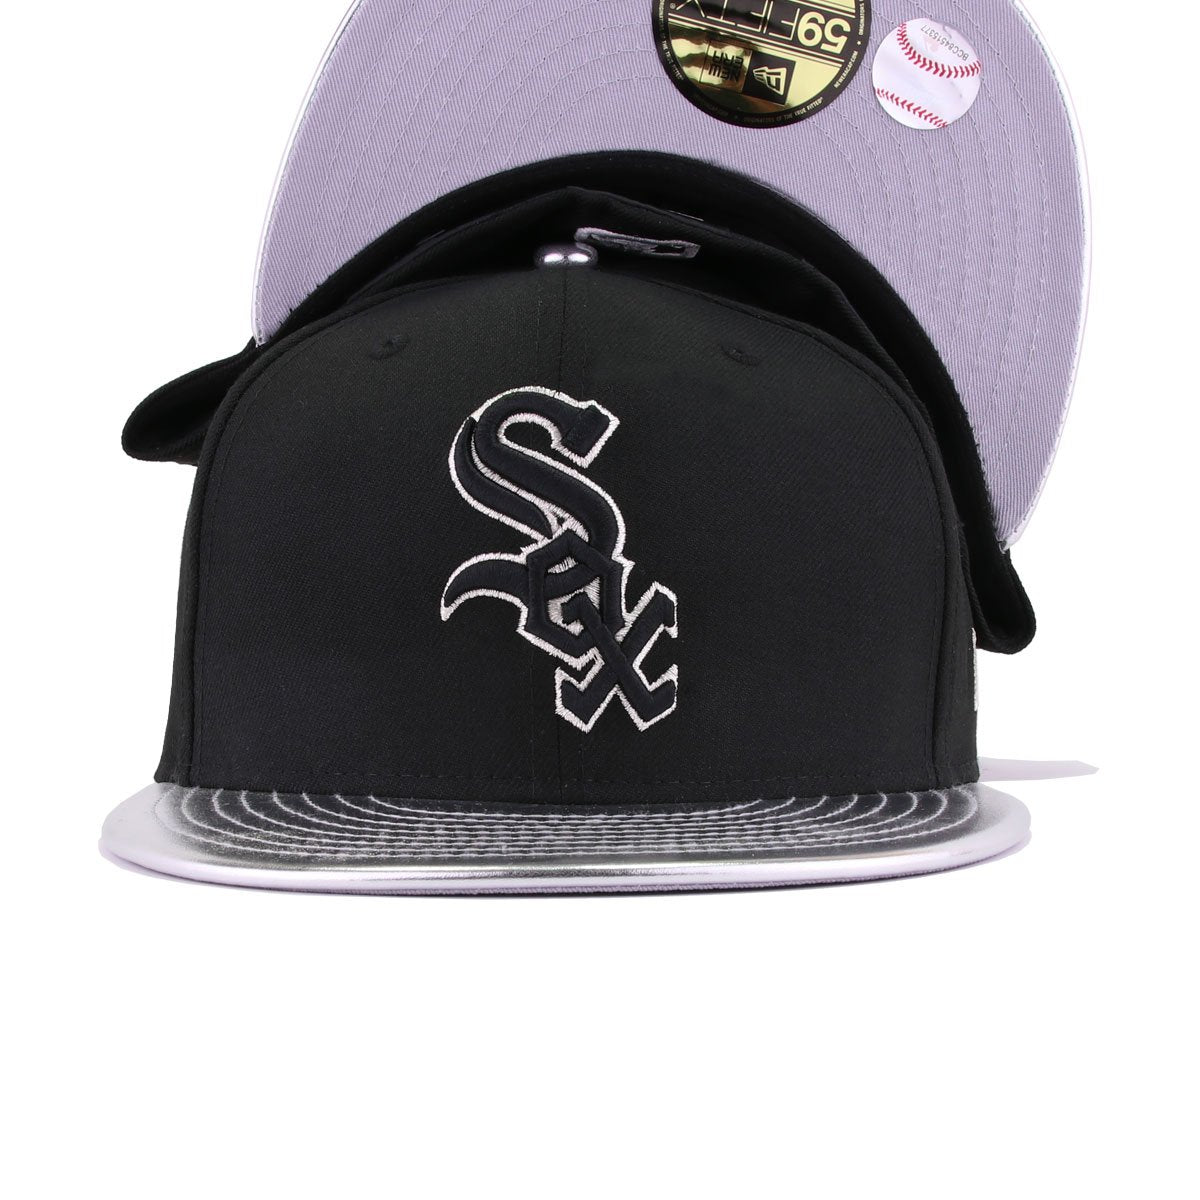 Chicago White Sox Black Metallic Silver Faux Leather New Era 59Fifty Fitted